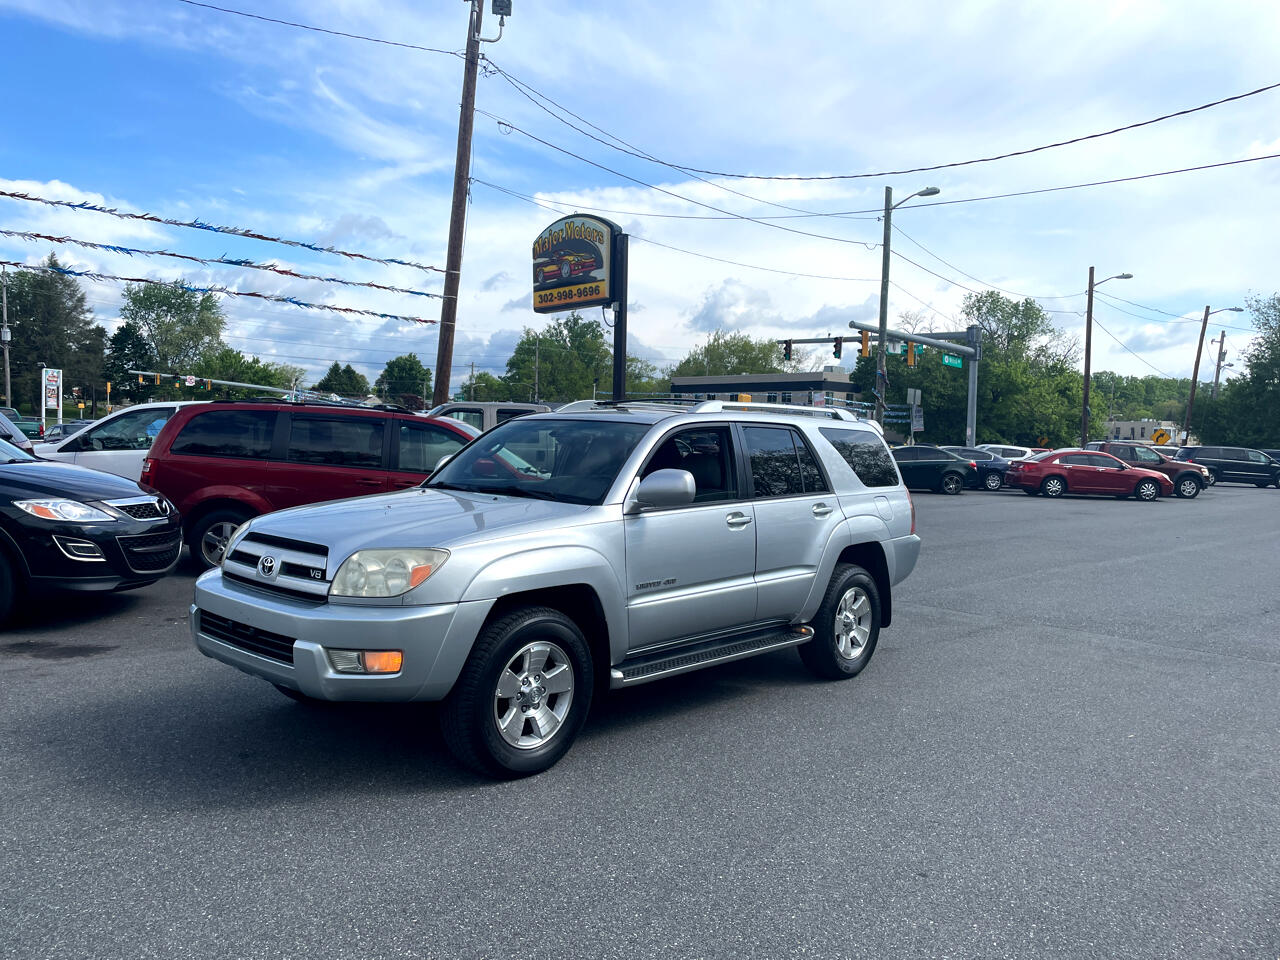 Toyota 4Runner 4dr Limited V8 Auto 4WD (Natl) 2003